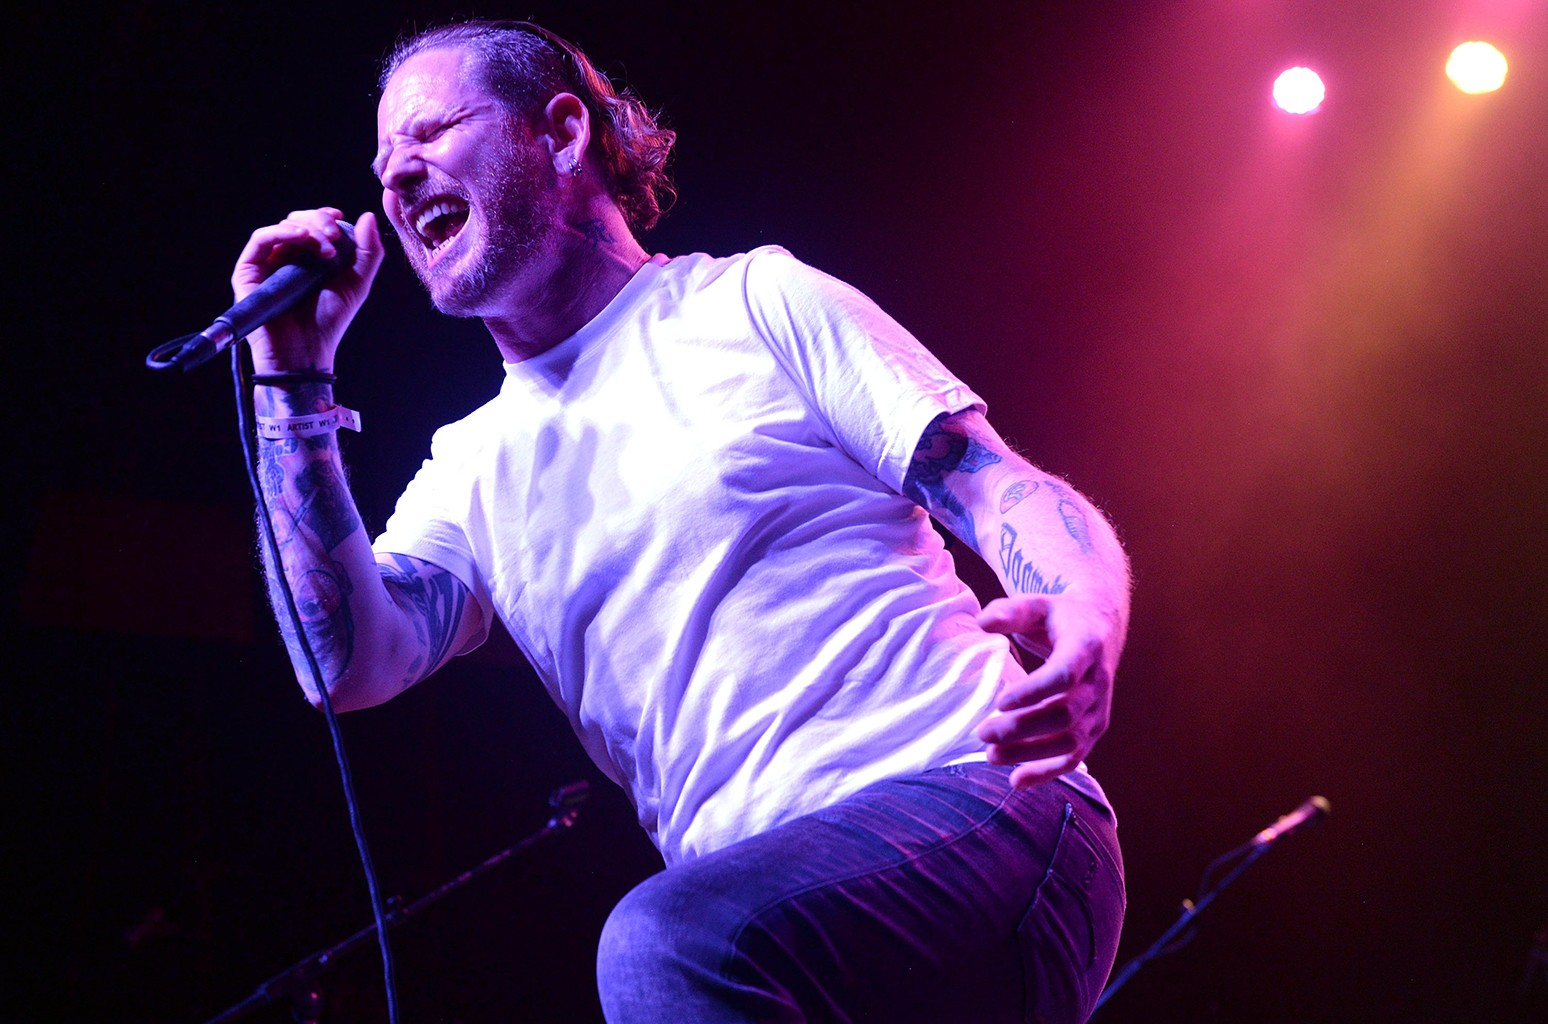 Corey Taylor of Stone Sour performs at The Fonda Theatre on May 14, 2017 in Los Angeles.